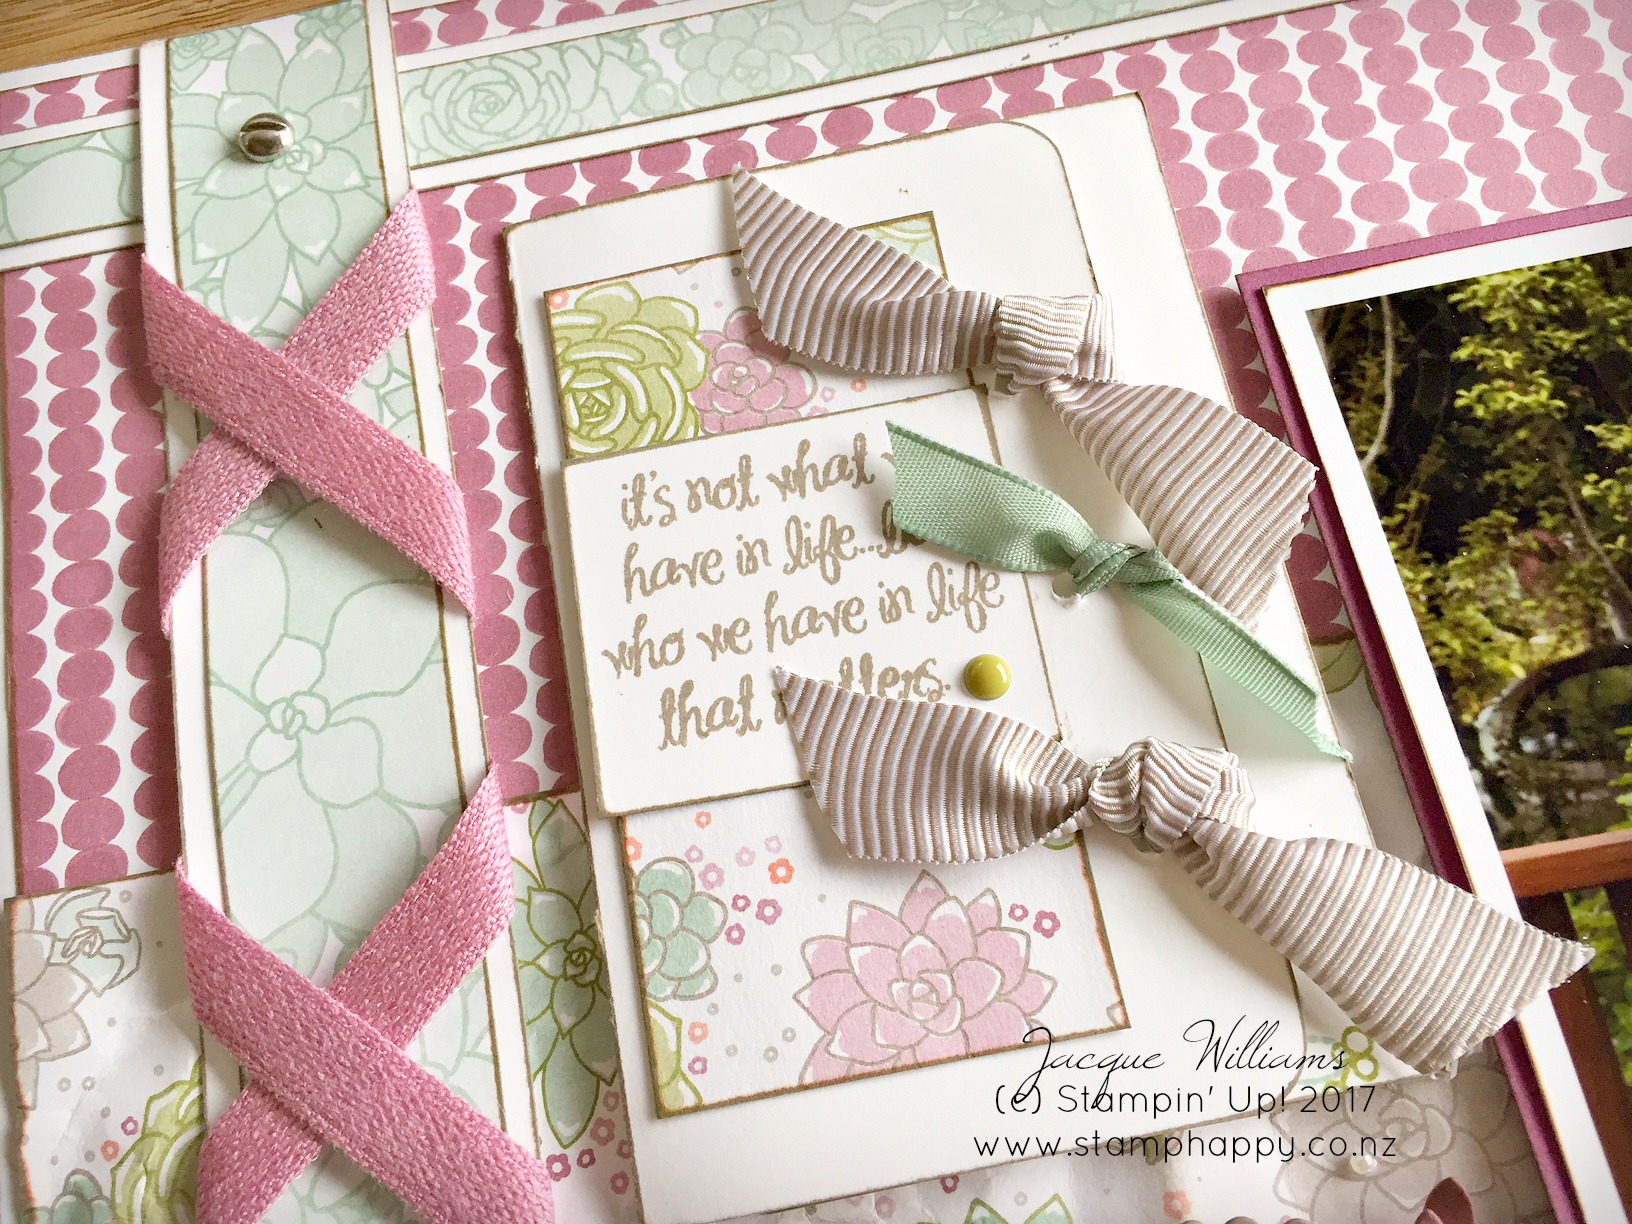 Stampin Up Succulent Garden Layout Hidden Photo Journaling Sugarplum Ribbon